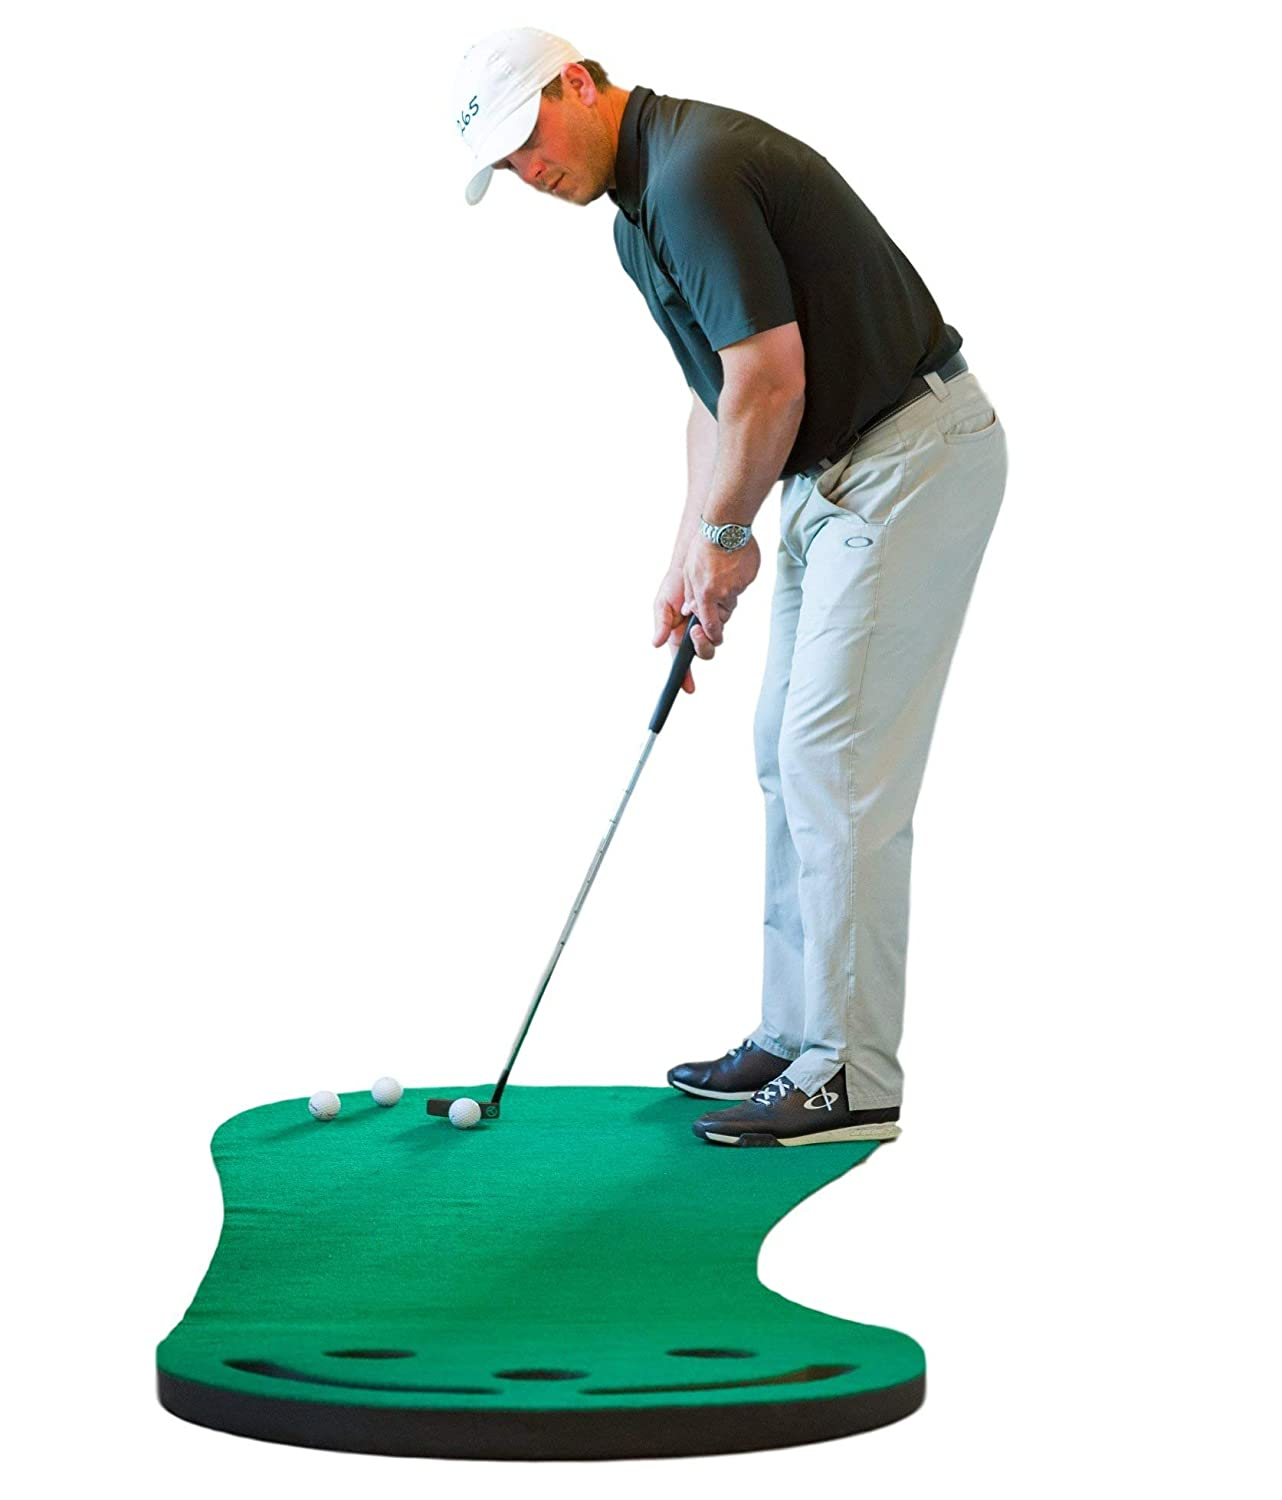 SHAUN WEBB Signature Putting Green Indoor Mat 9 x3 Designed by PGA Pro Golf Digest s Top Teacher Improve Your Putting Stroke and Lower Scores – Zero Bumps and Creases, Thick Wide Surface